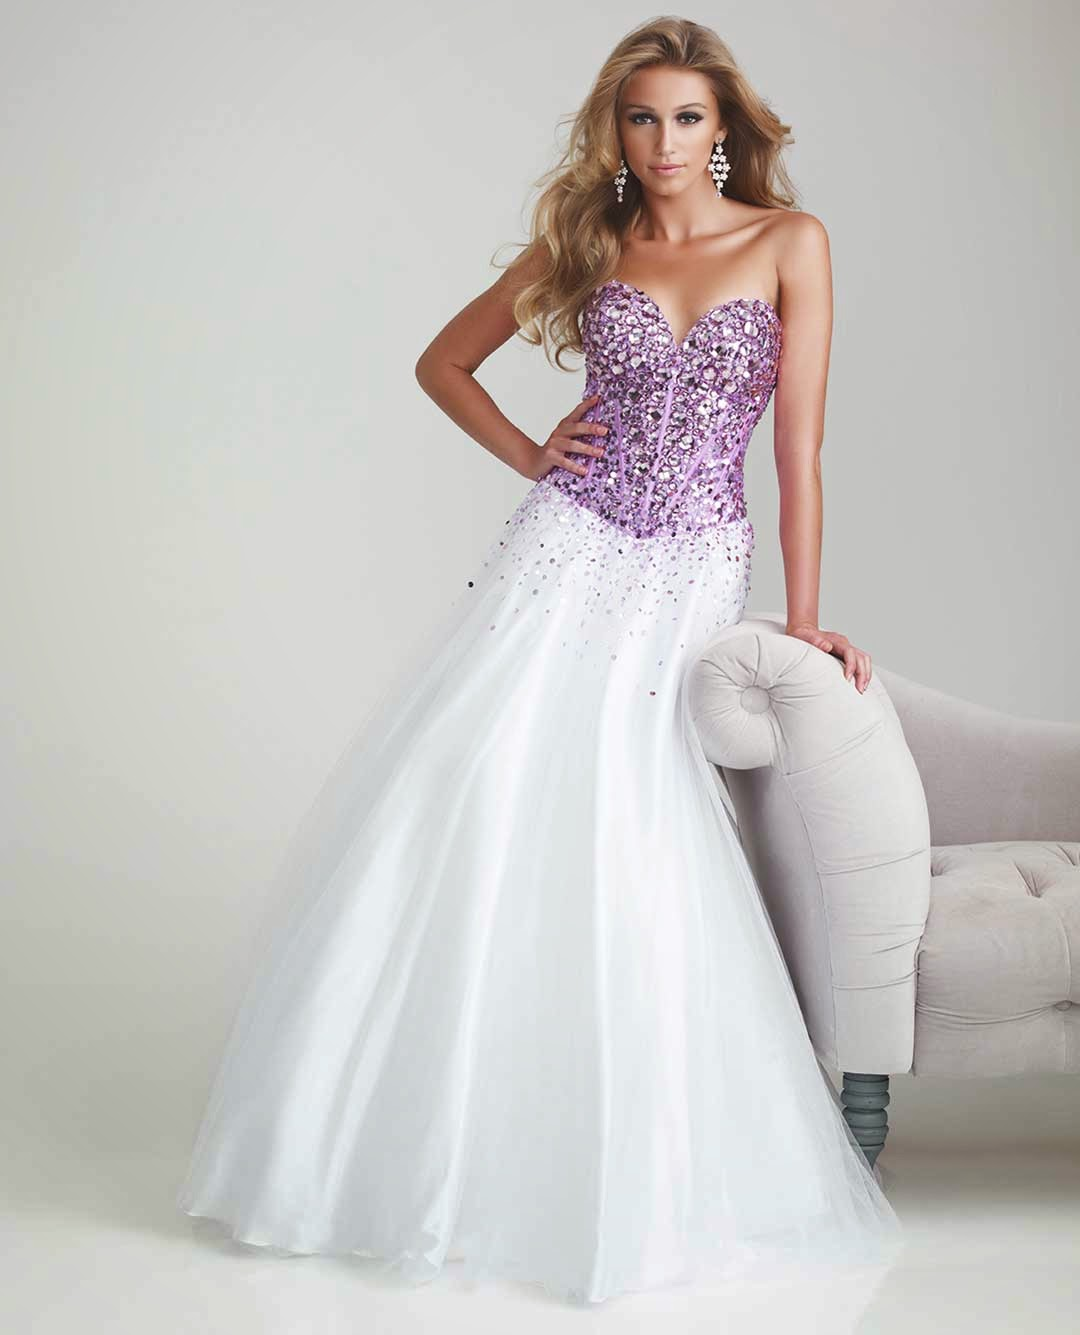 Wedding Dress Ideas: Purple And White Wedding Dresses Concepts Ideas